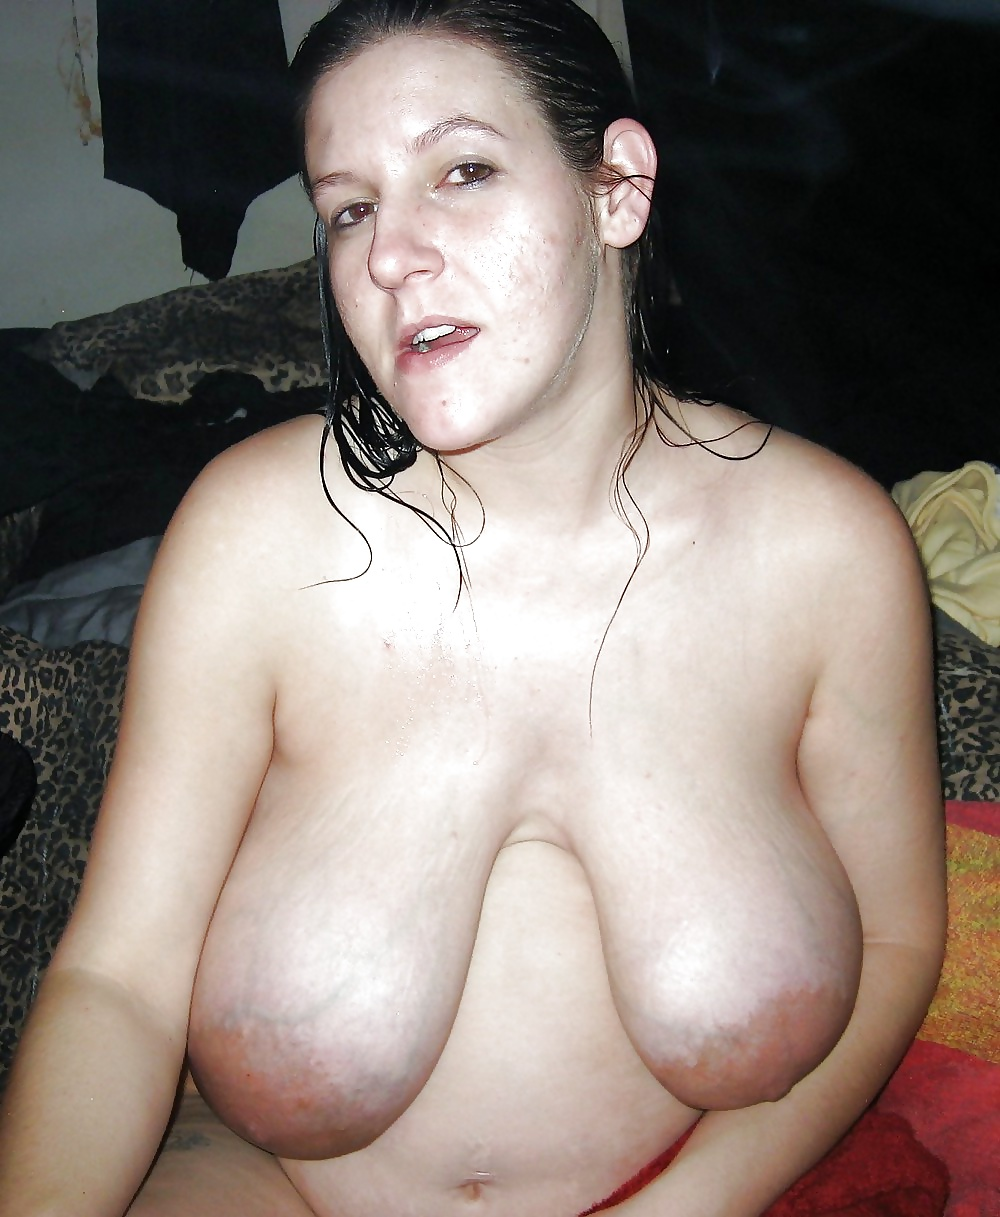 Hot Naked Saggy Tits Girls Porn Photos Gallery